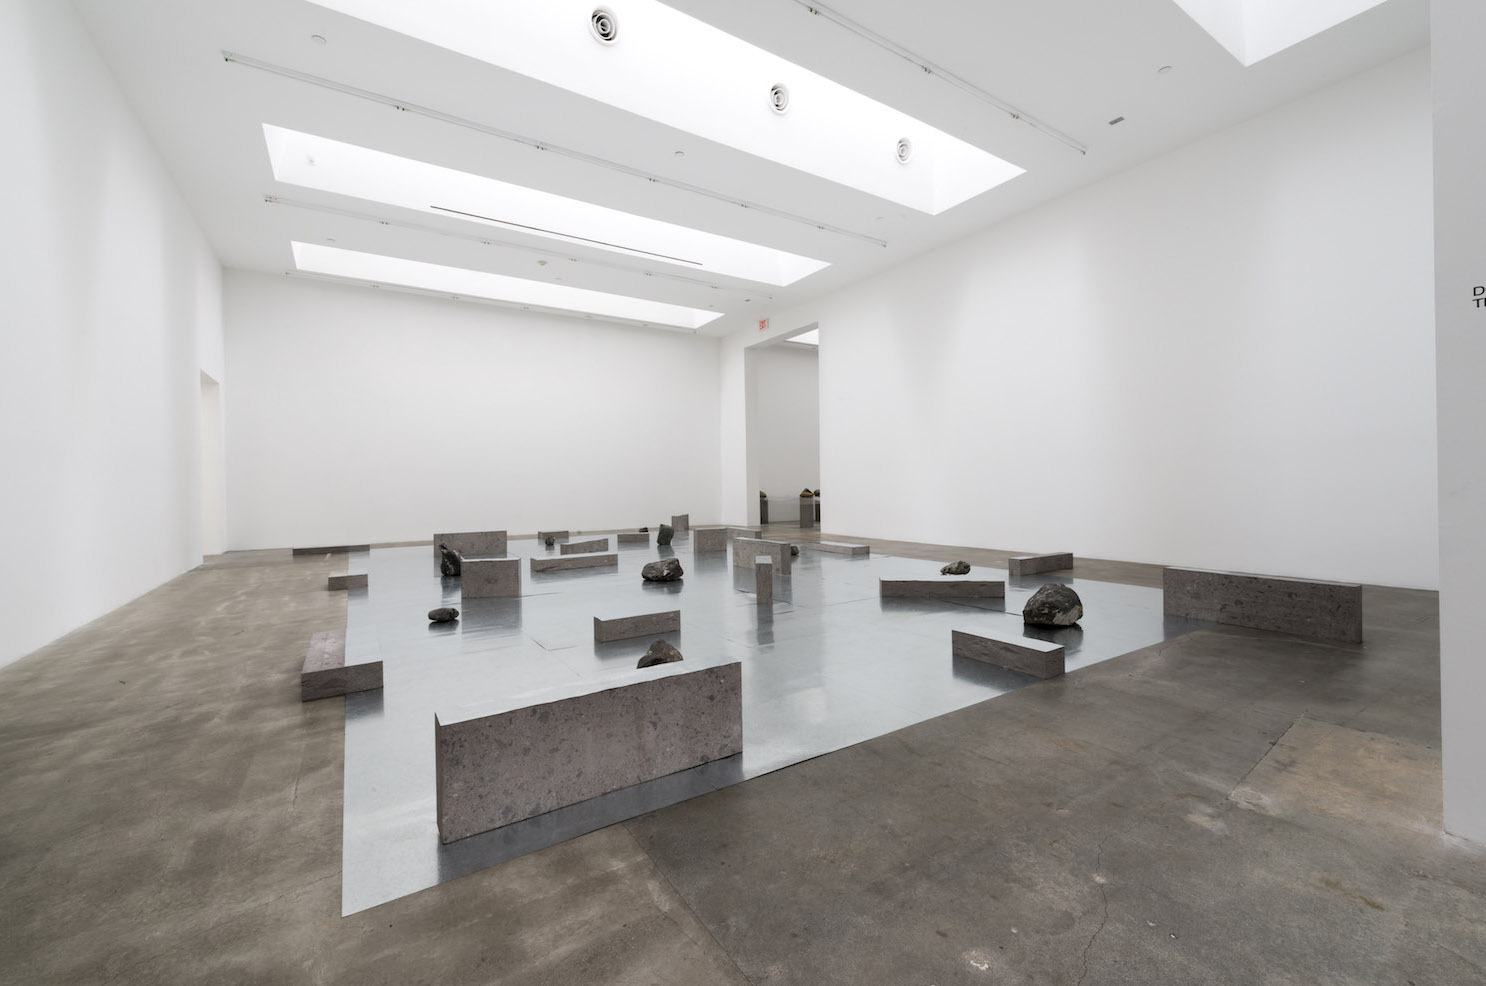 Gap of the Entrance to the Space , 1979/2012 界入差 ( Kainyūsa ) Zinc plates, stones 11 7/8 x 268 1/4 x 296 1/4 inches overall Installation view, Blum & Poe, Los Angeles, 2012 Photo: Joshua White/JWPictures.com Courtesy Blum & Poe, Los Angeles / New York / Tokyo